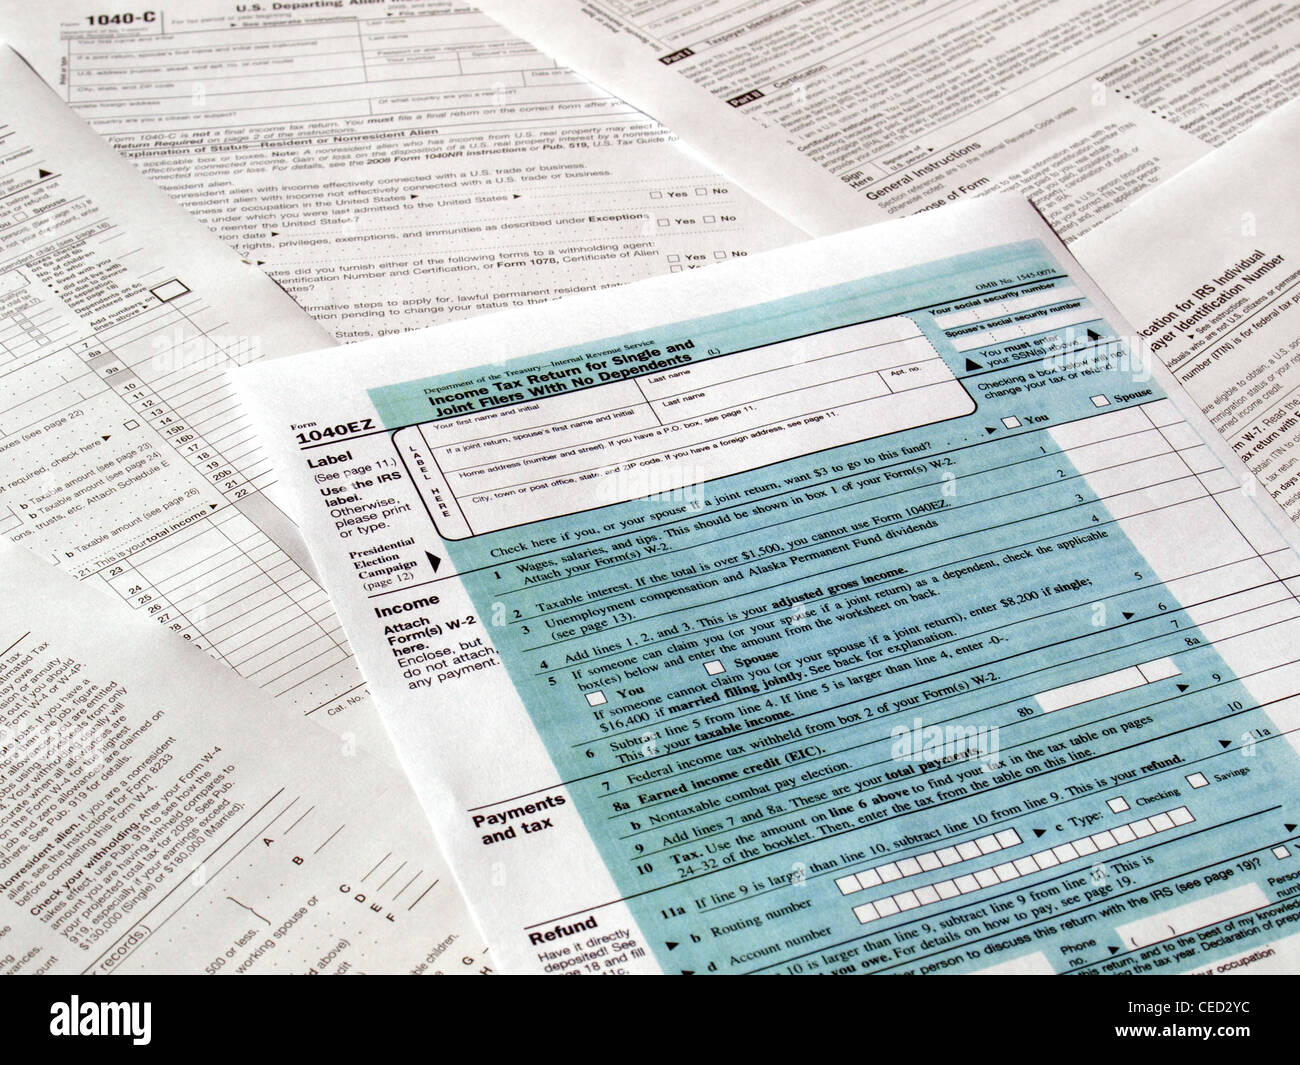 blank tax form stock photos blank tax form stock images alamy